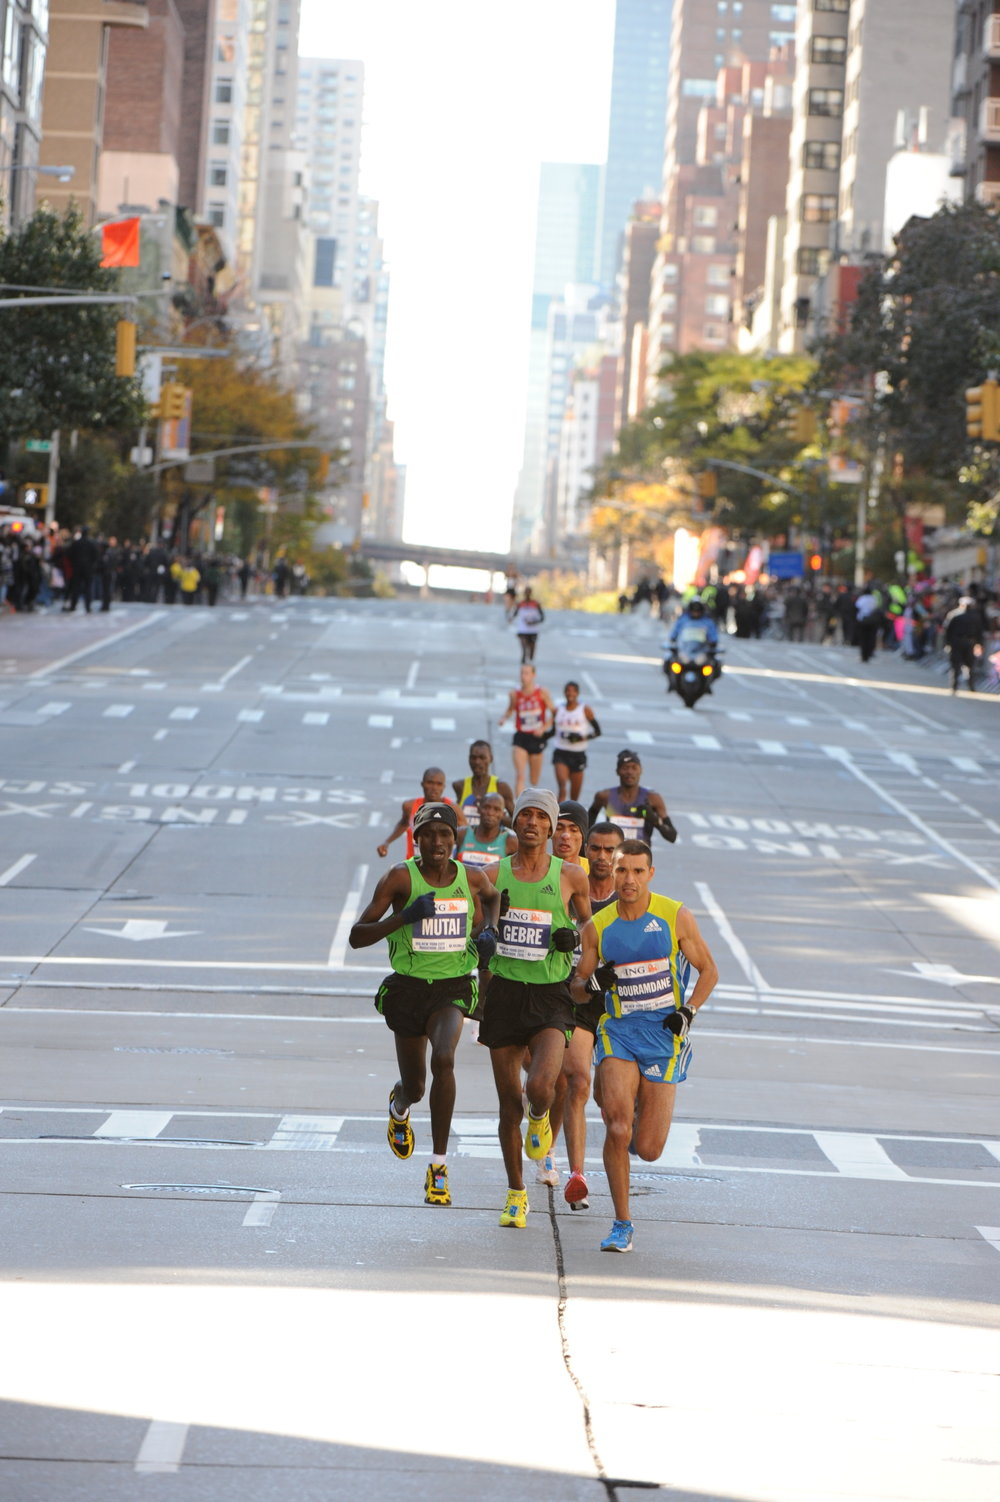 The breakaway begins on First Avenue, with Keflezighi visible in the background.